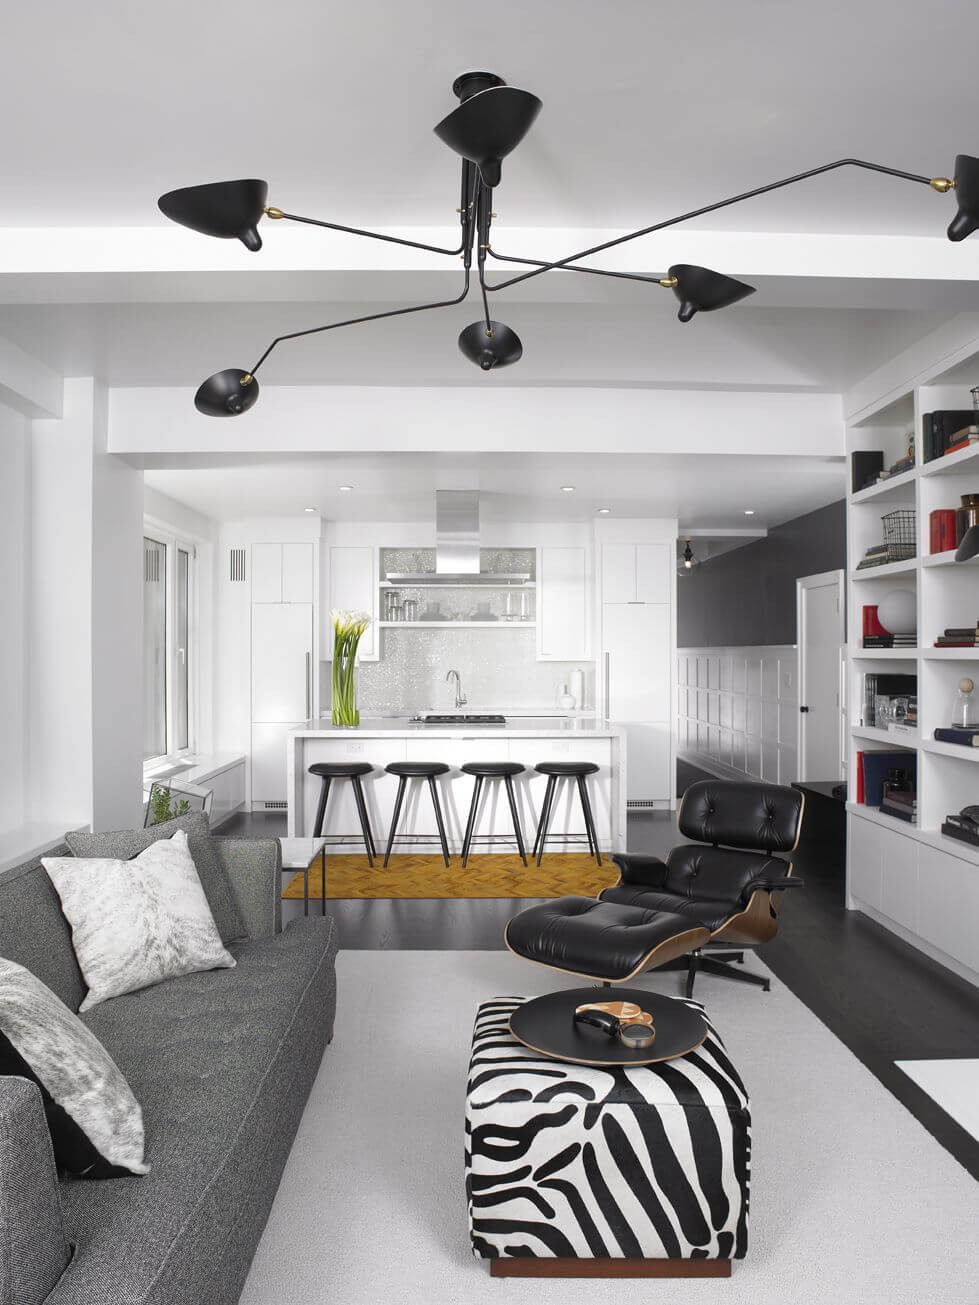 This small apartment living room in an open concept living space features a small zebra print ottoman functioning as a coffee table in between a grey sofa and black reclining chair